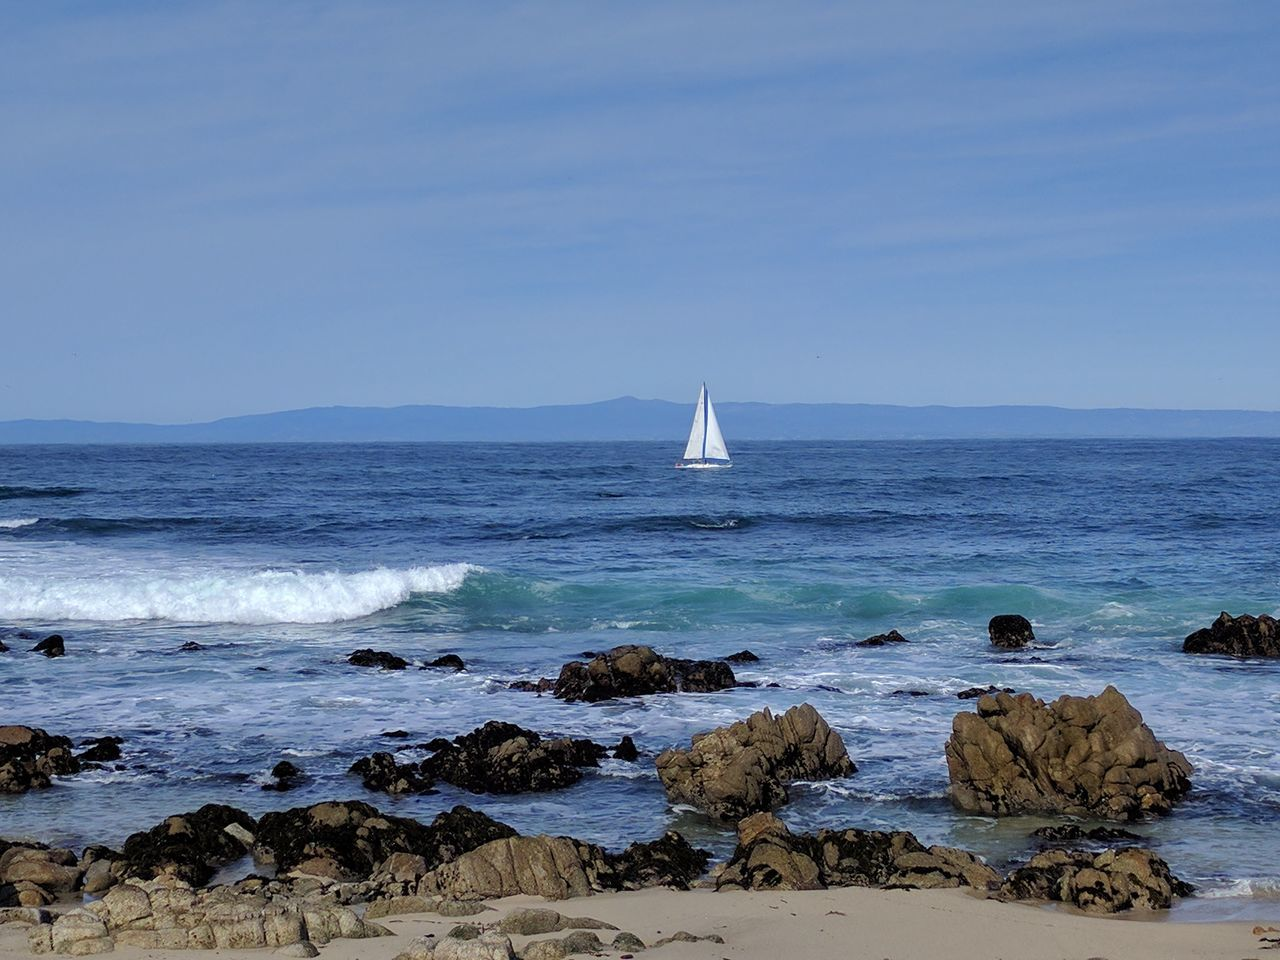 Sea Beach Nautical Vessel Horizon Over Water Sailboat Water Sailing Ship Vacations Sailing Outdoors Sand Day Sky Yacht No People Yachting Taking Photos From My Point Of View Relaxing Beachphotography Waves, Ocean, Nature